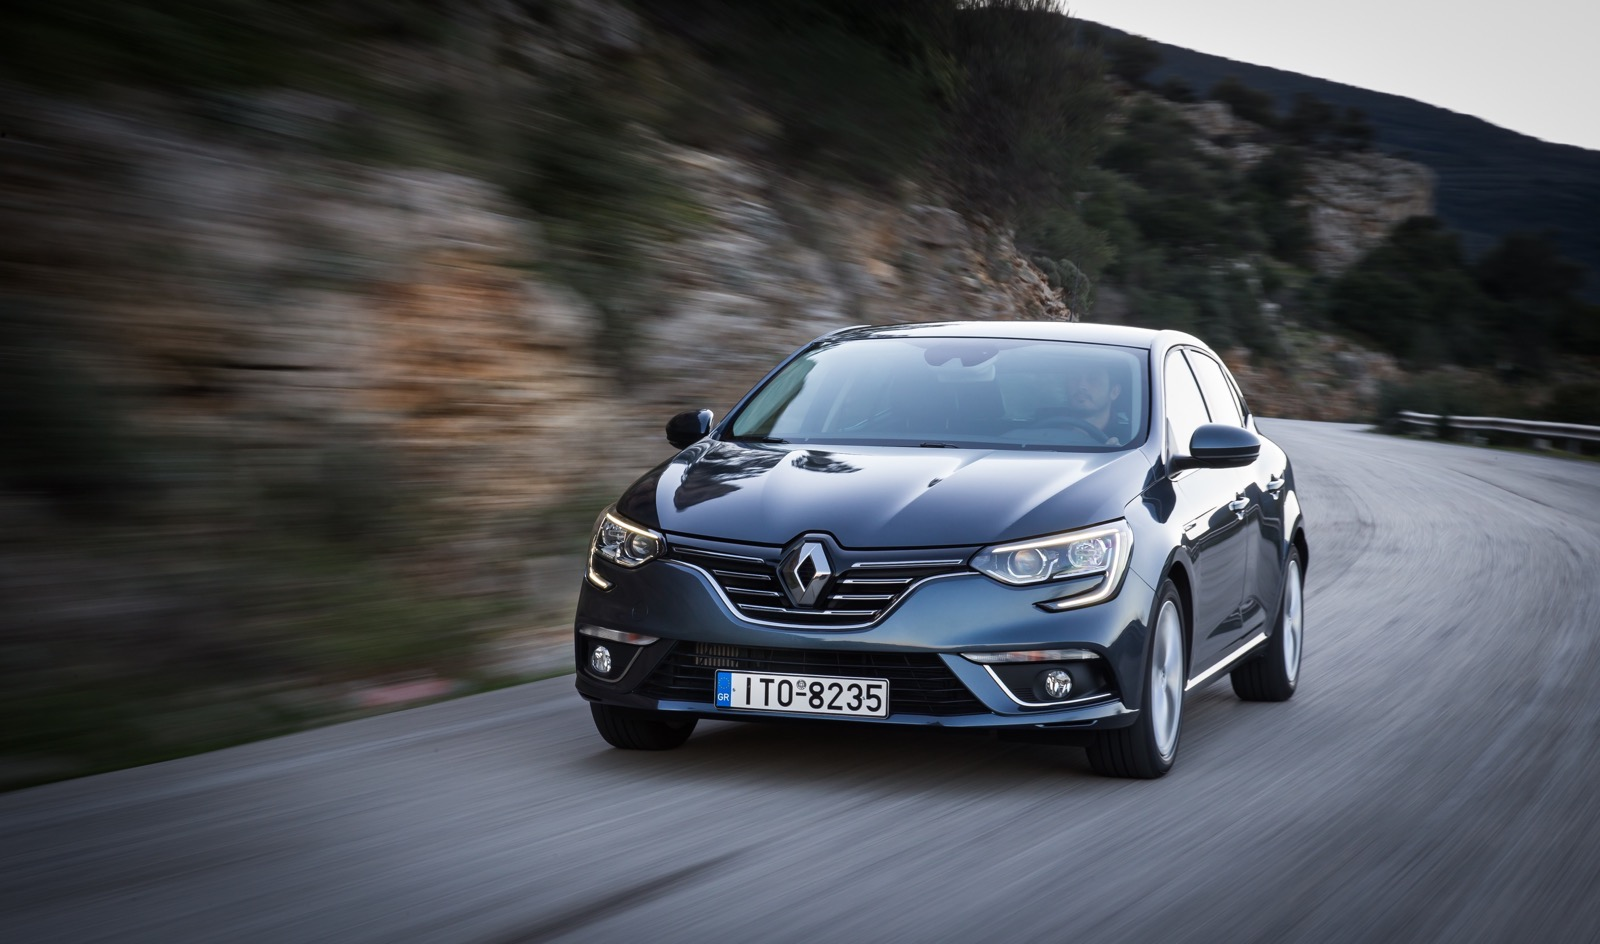 First_Drive_Renault_Megane_105